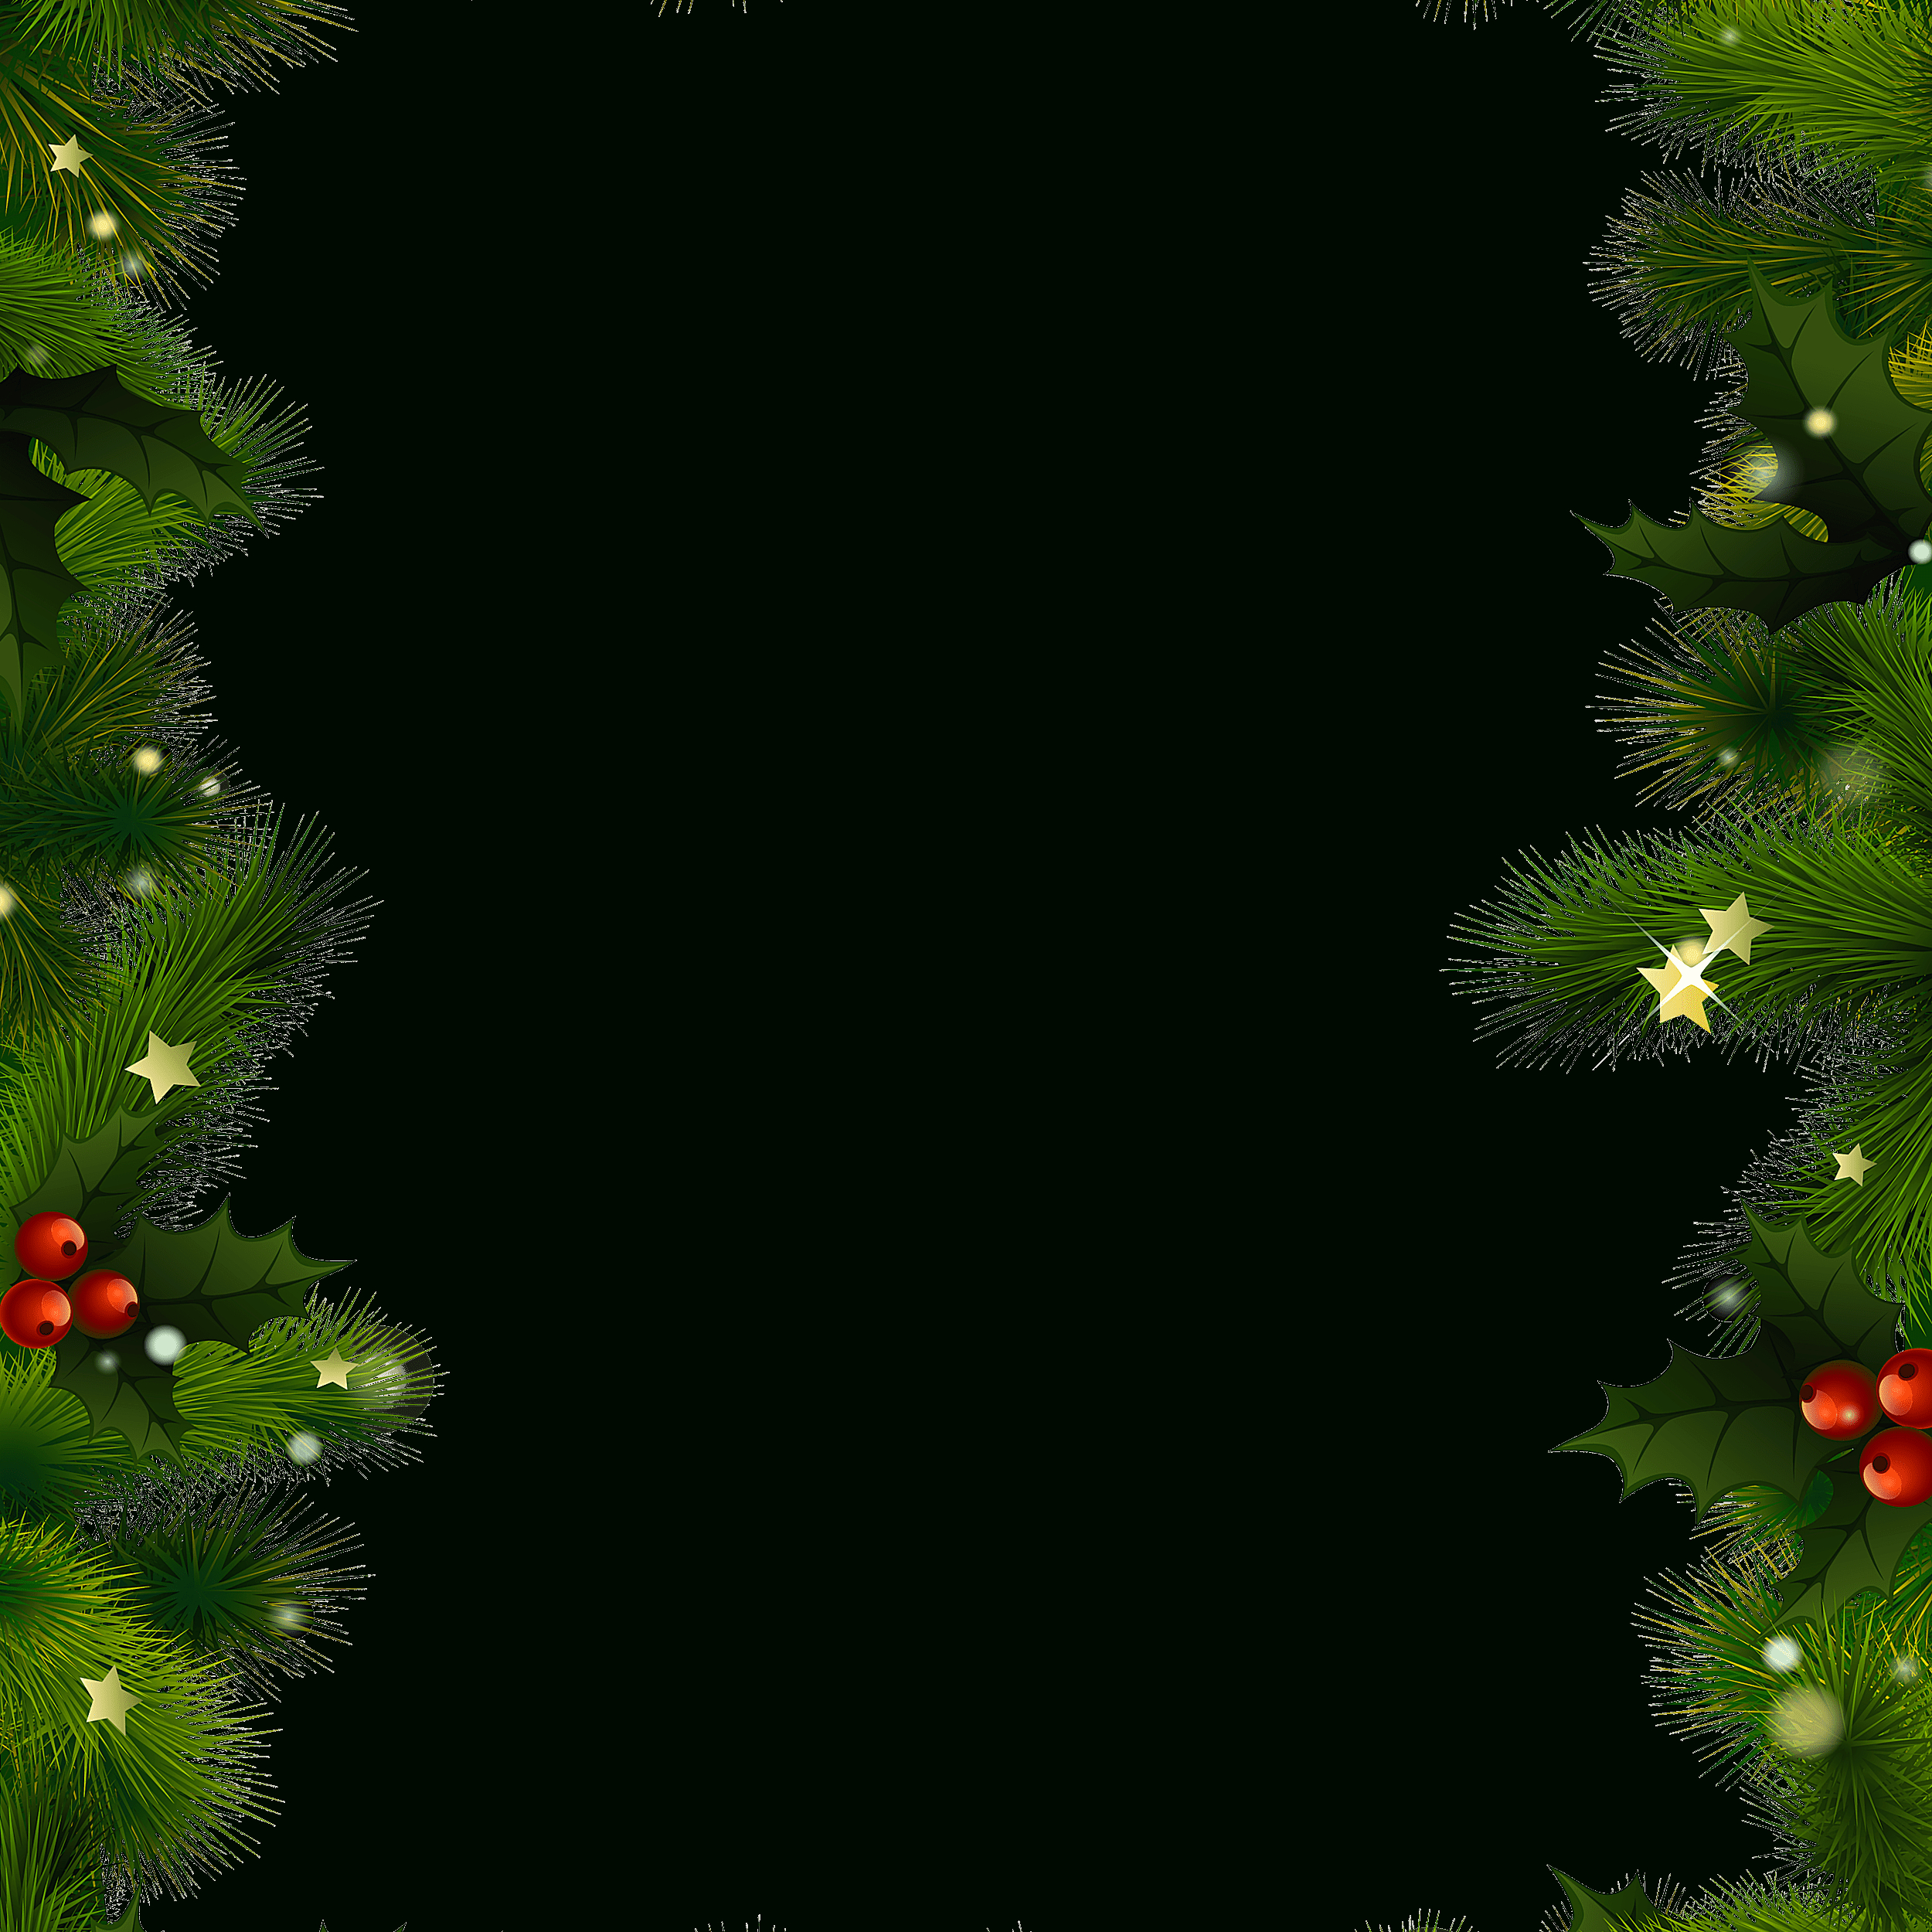 Free Christmas Borders And Frames - Free Printable Christmas Backgrounds